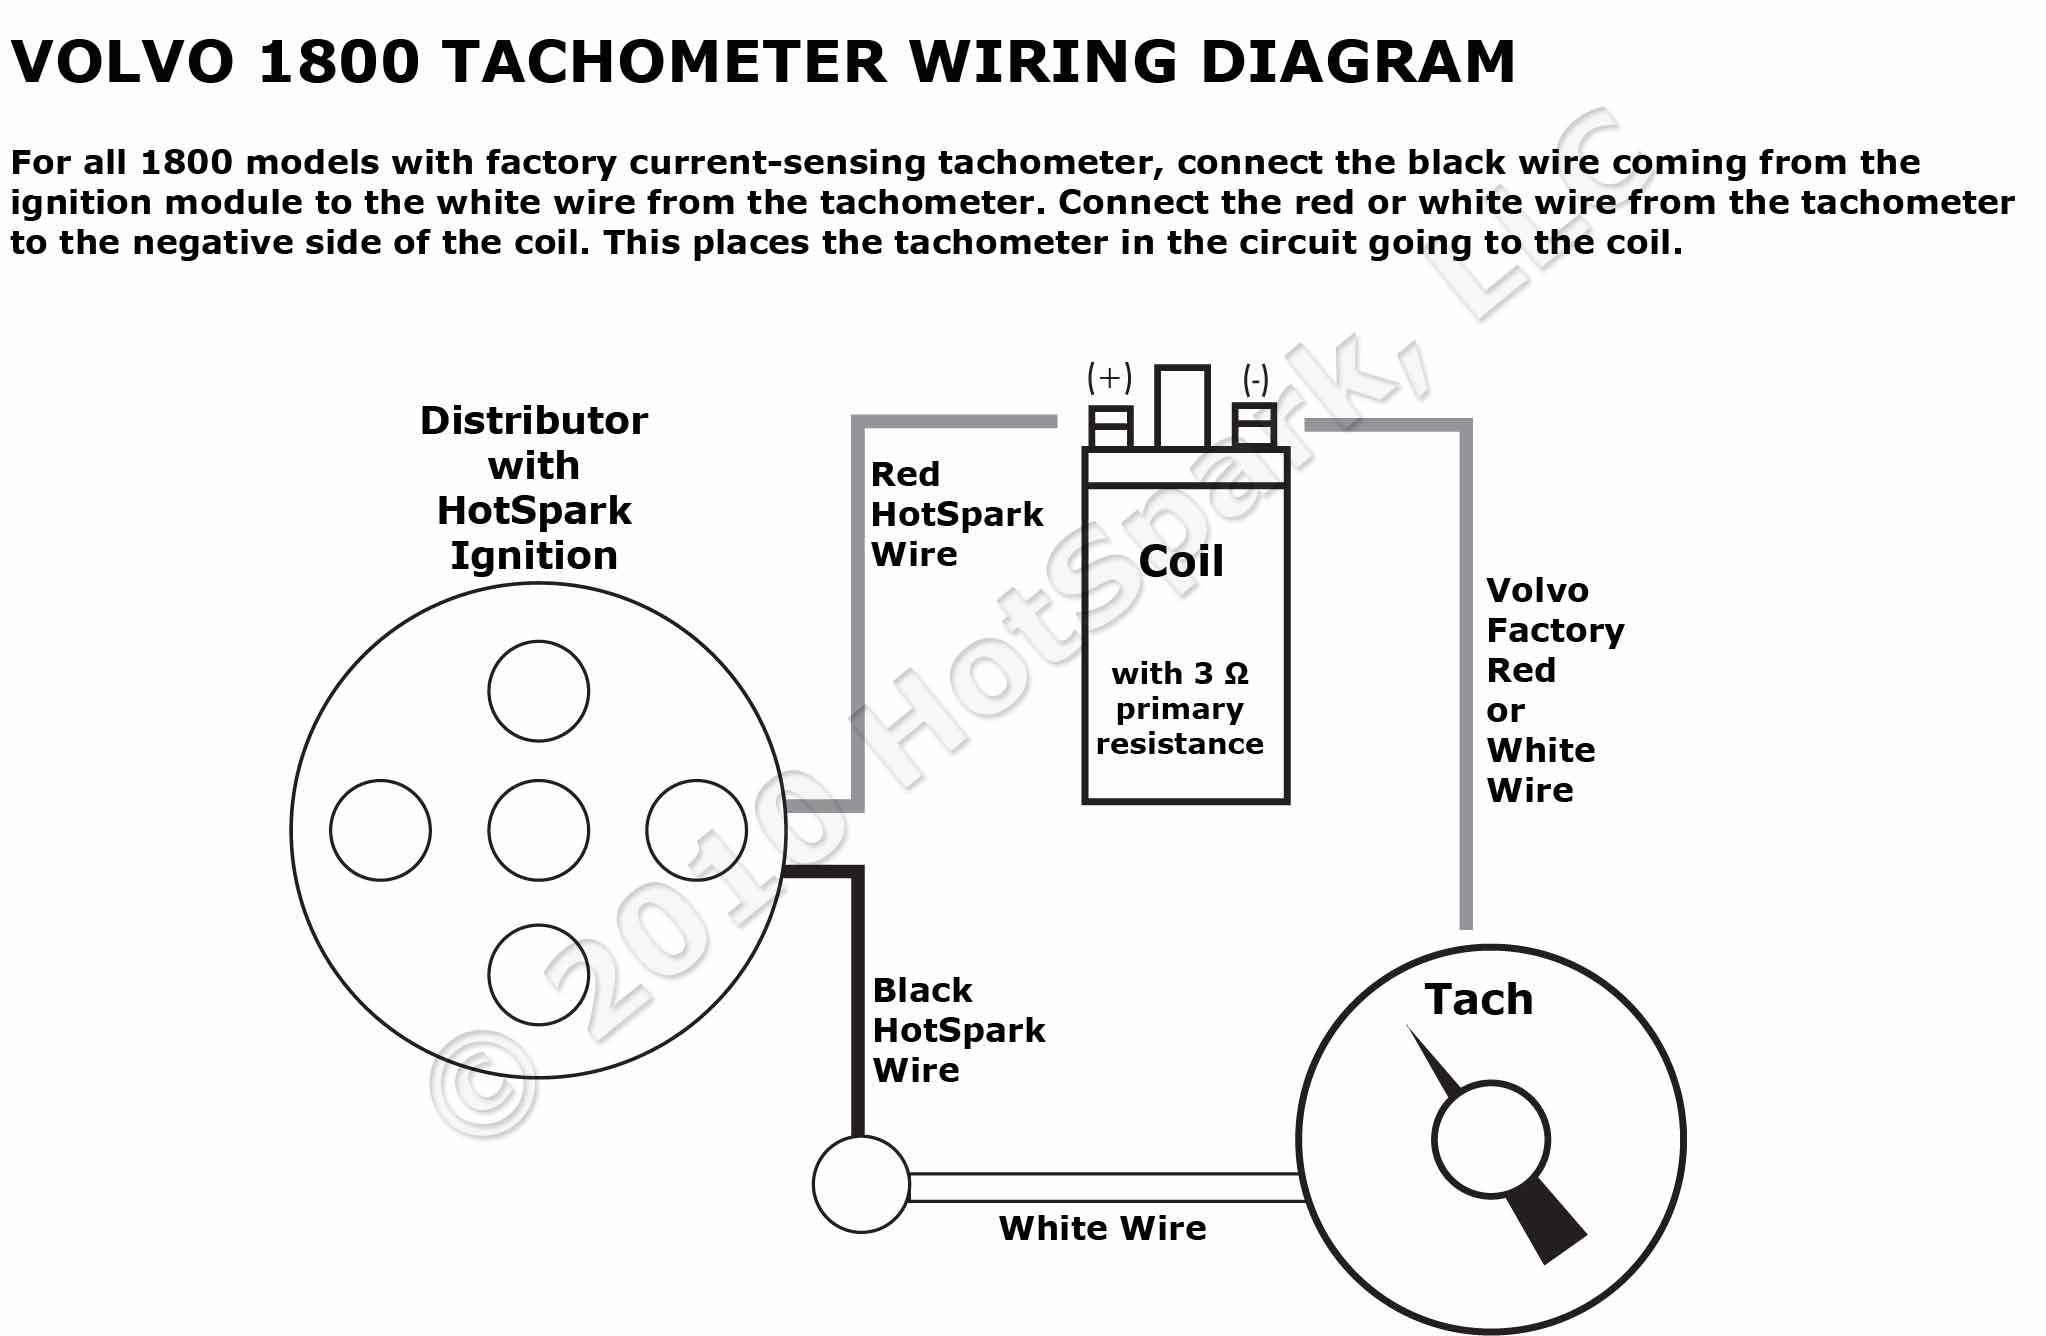 Volvo 1800 Tachometer Wiring Diagram with HotSpark Ignition Electronic  Ignition Conversion KitHot Spark